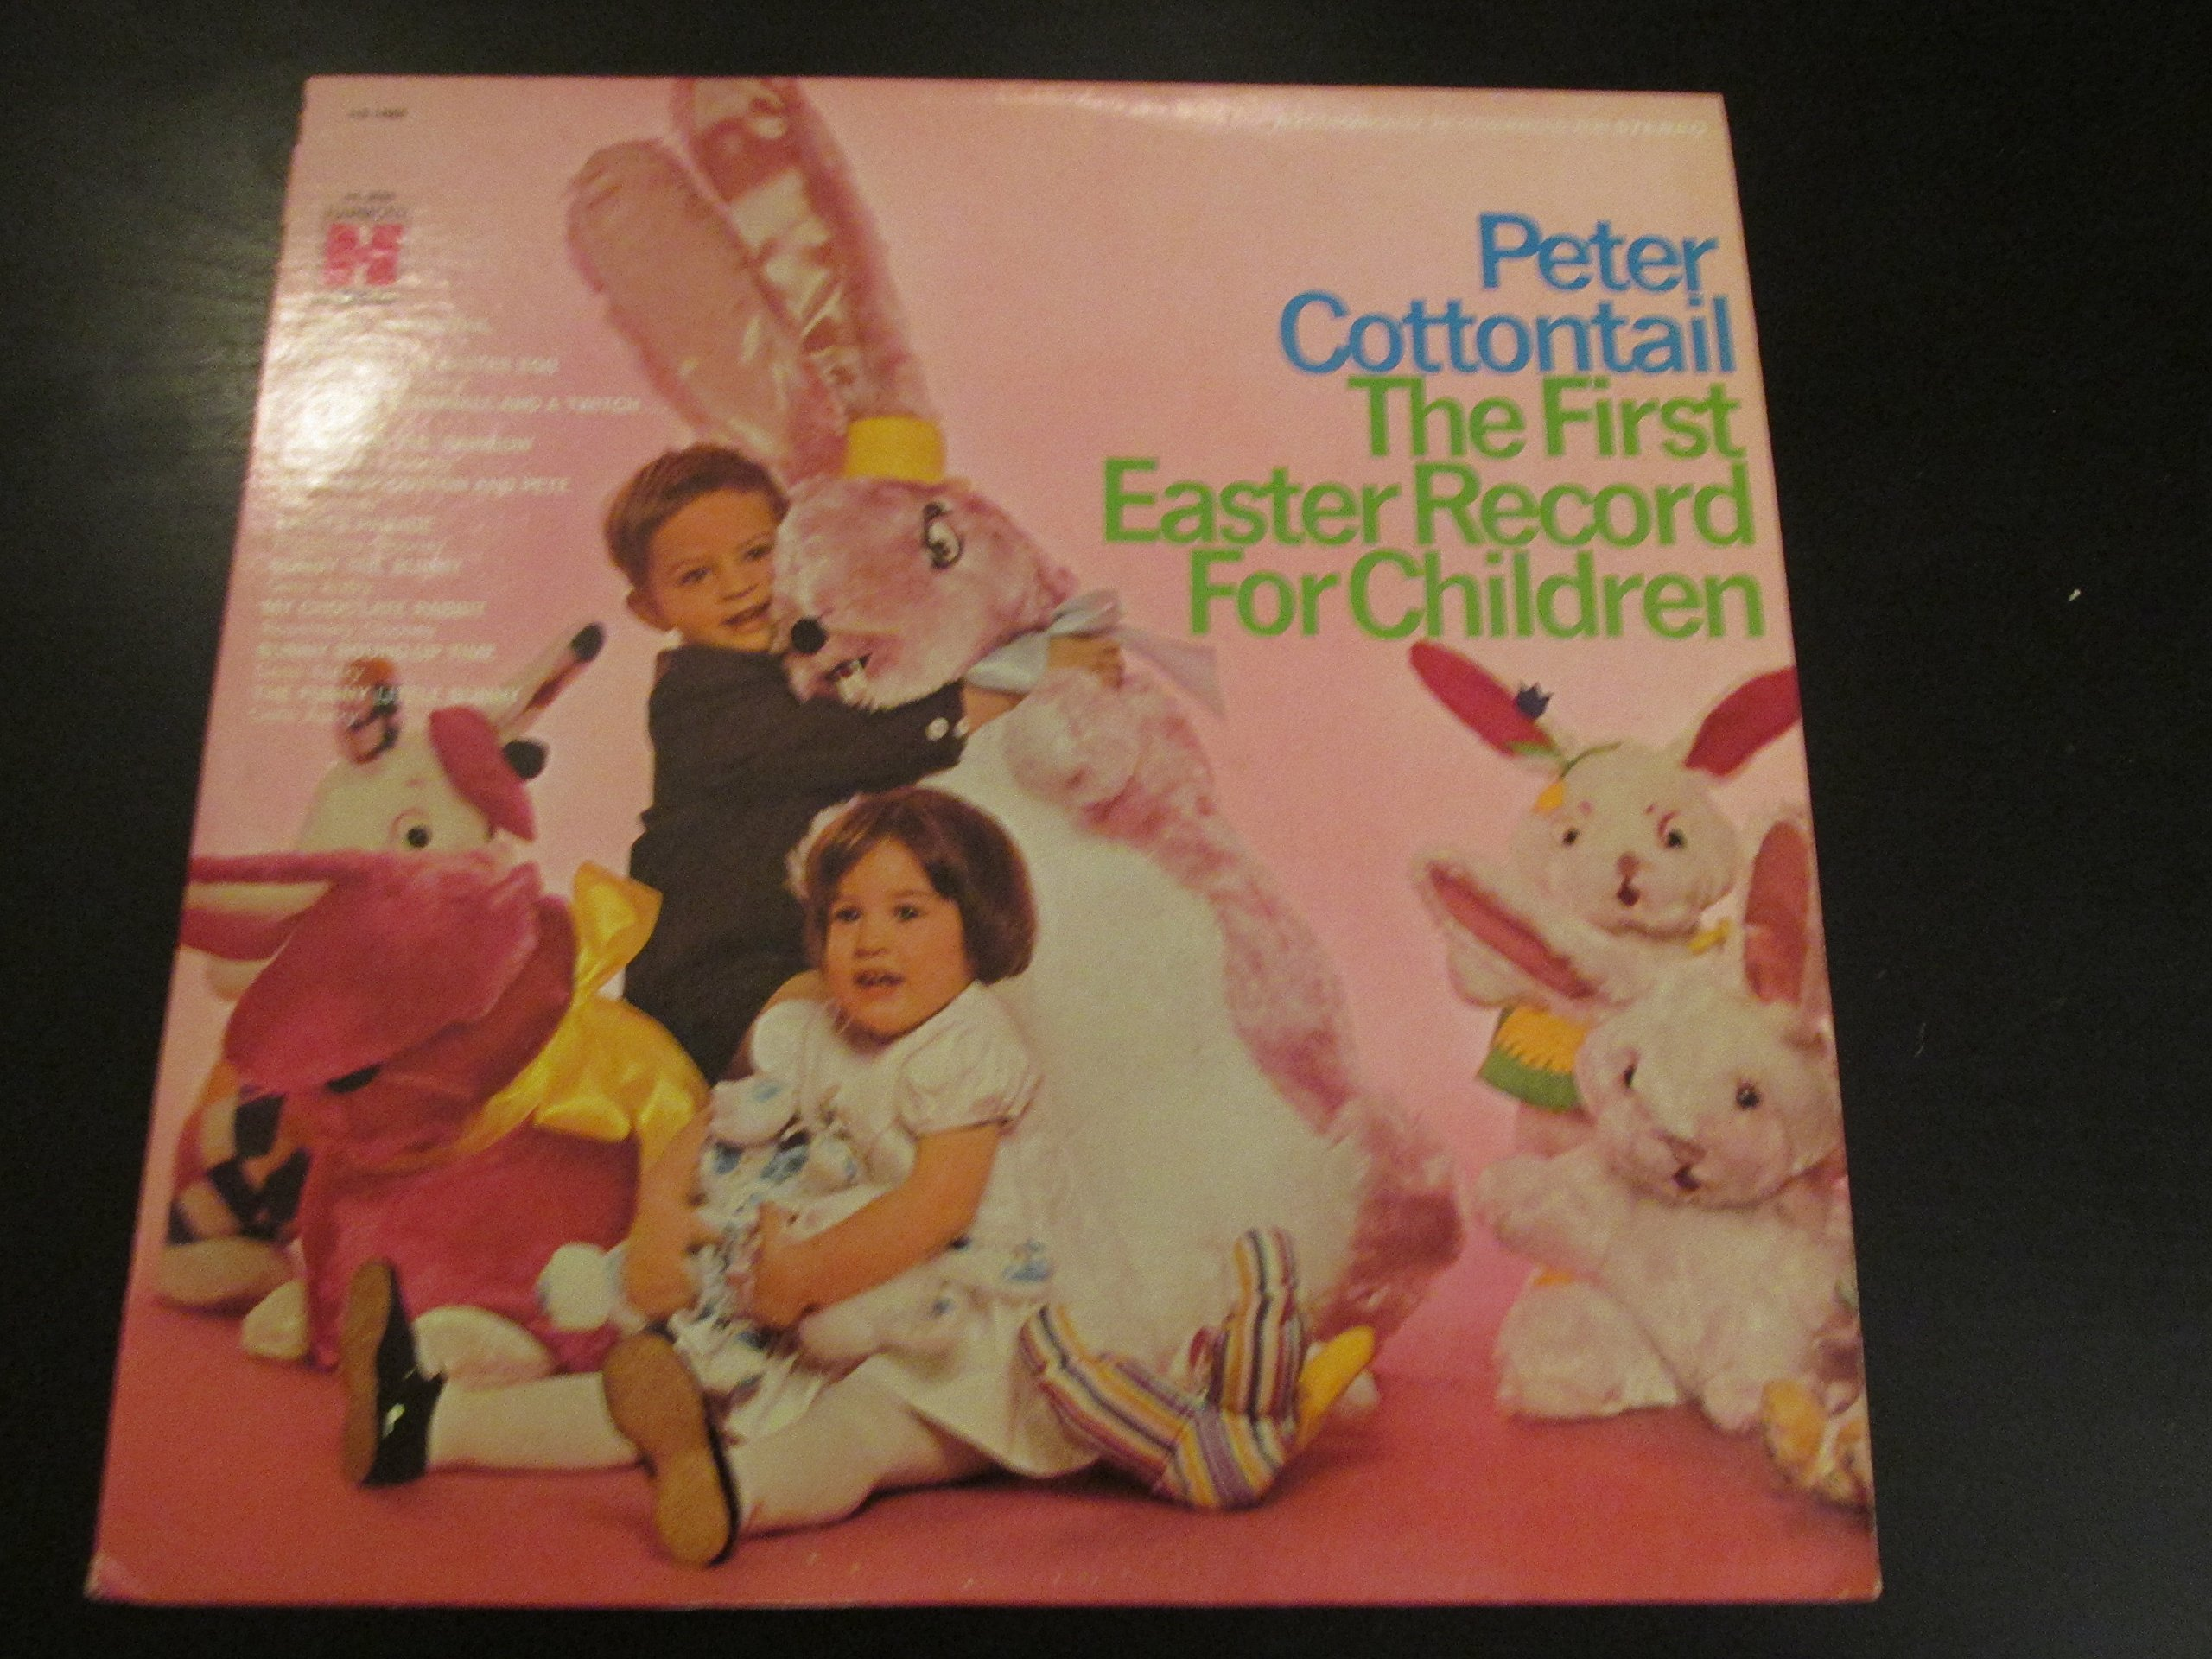 Peter Cottontail the First Easter Record for Children